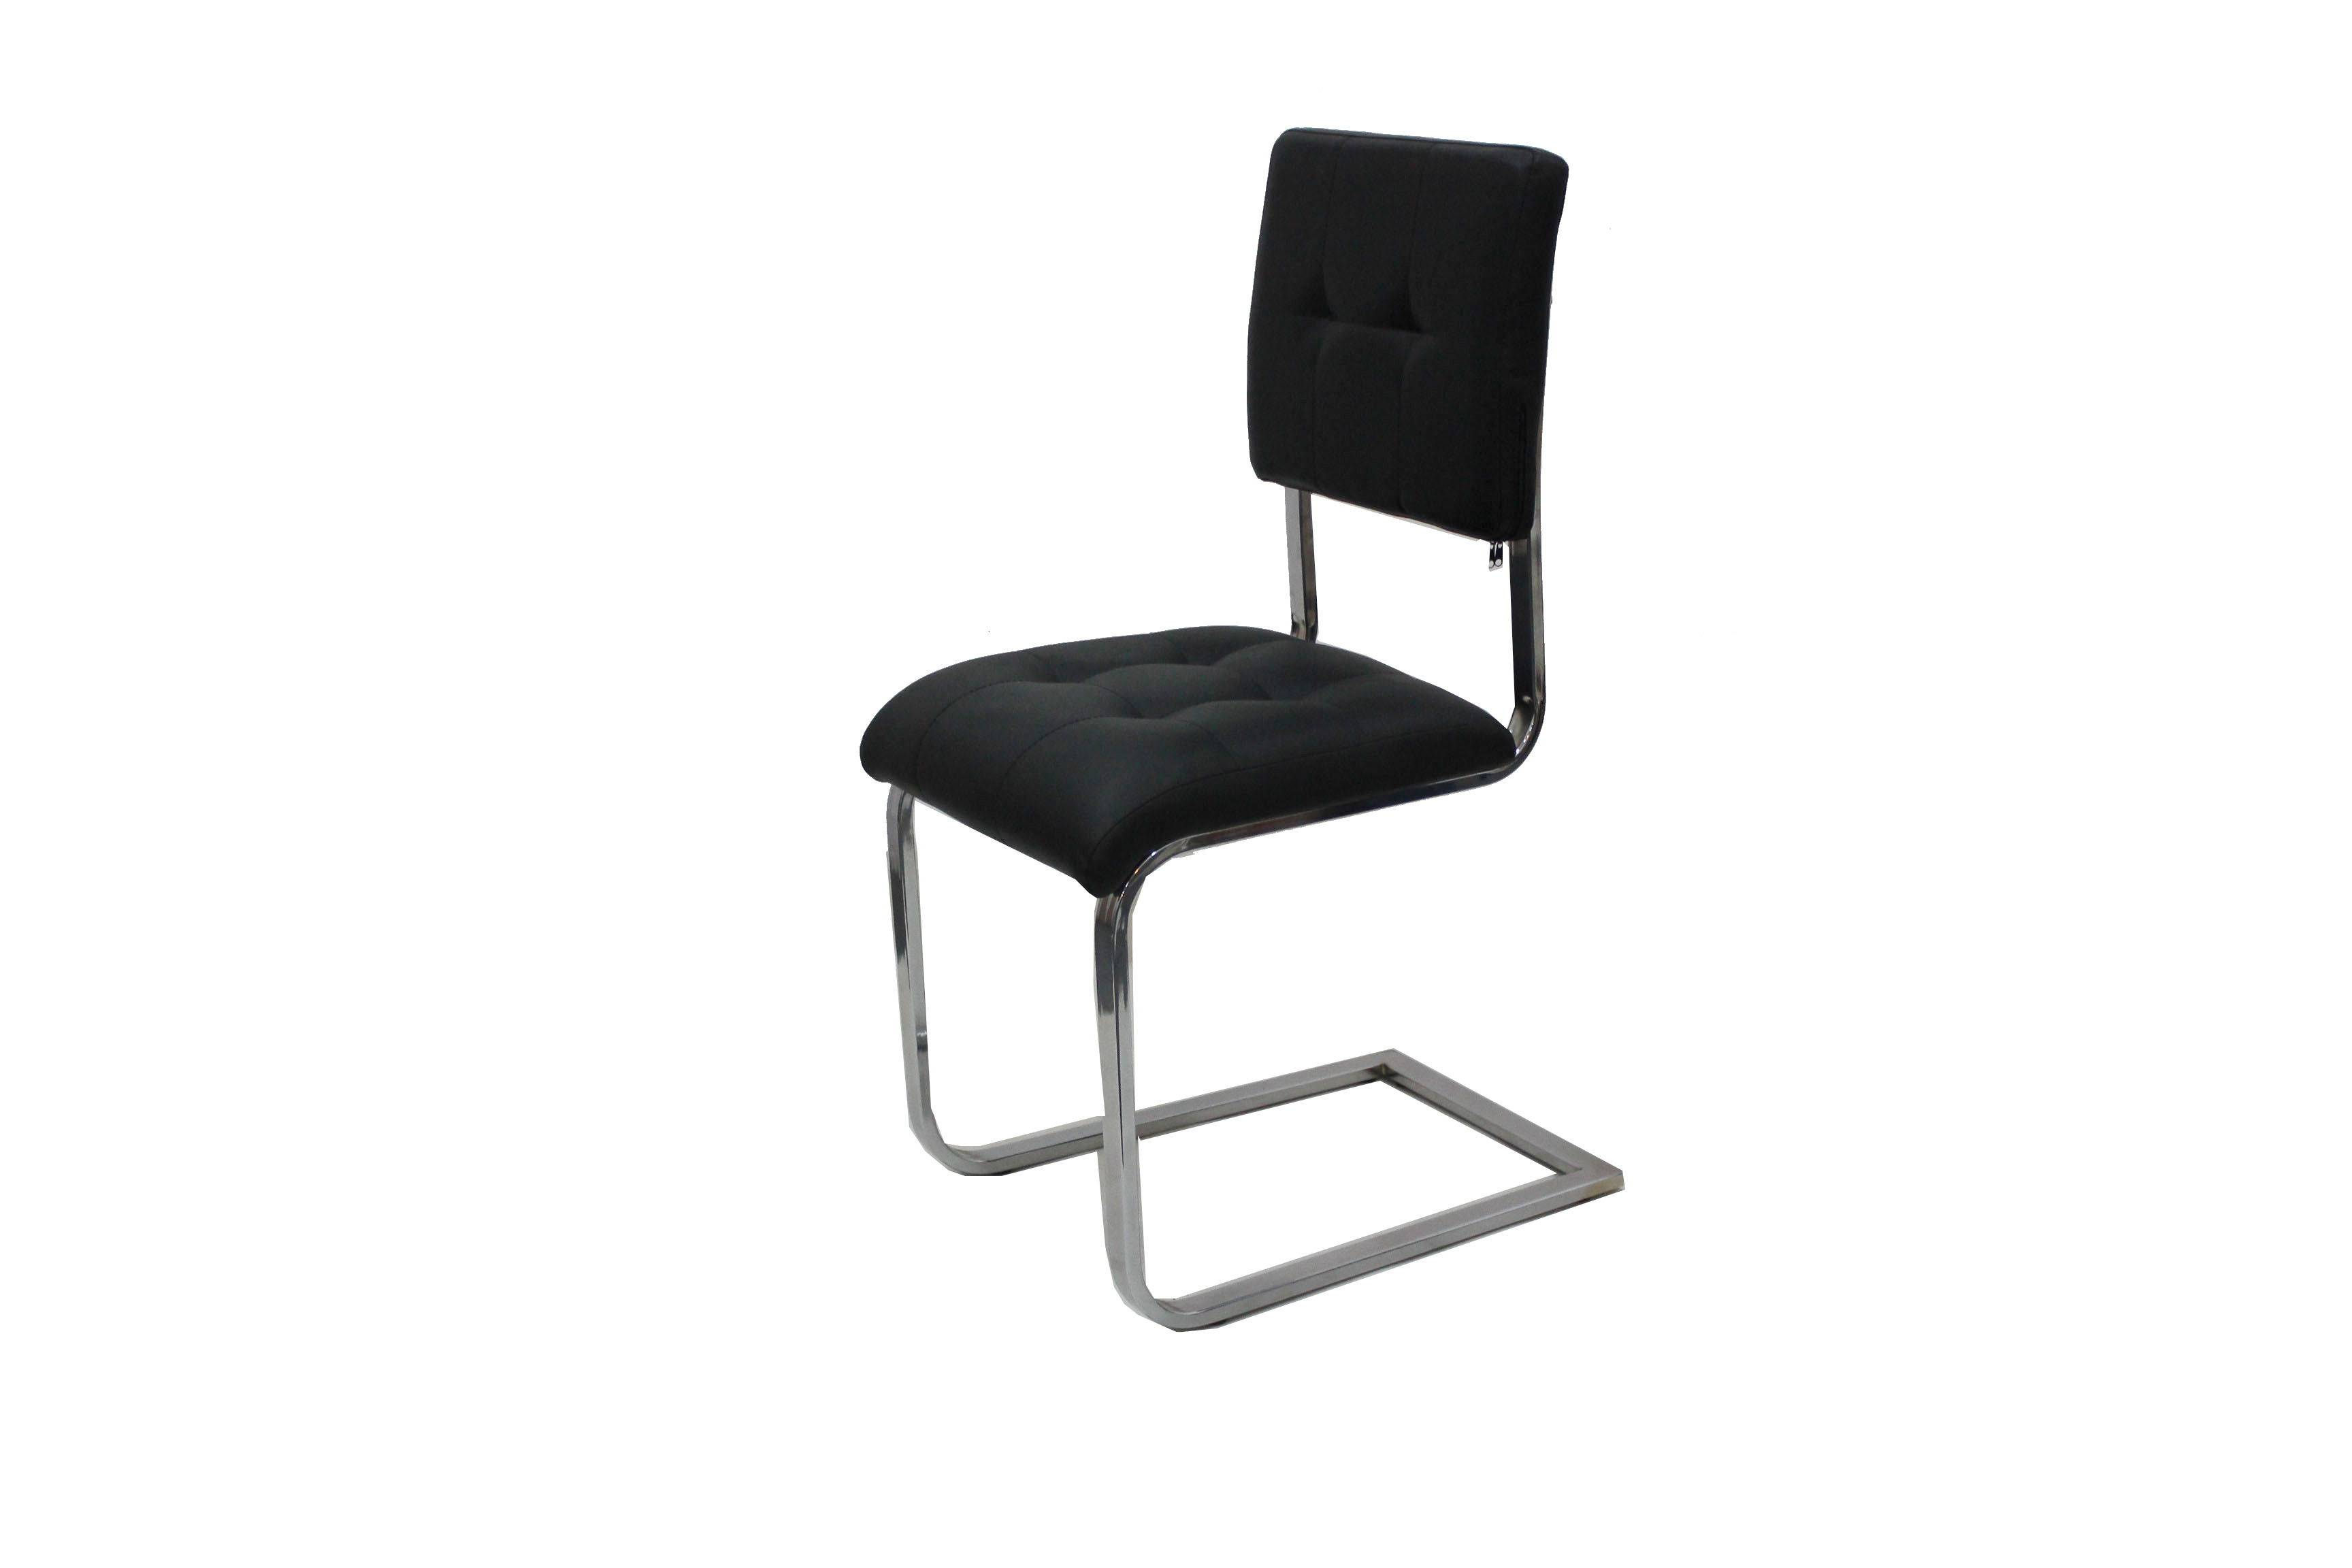 Contemporary and new design chair with metal framed chairs